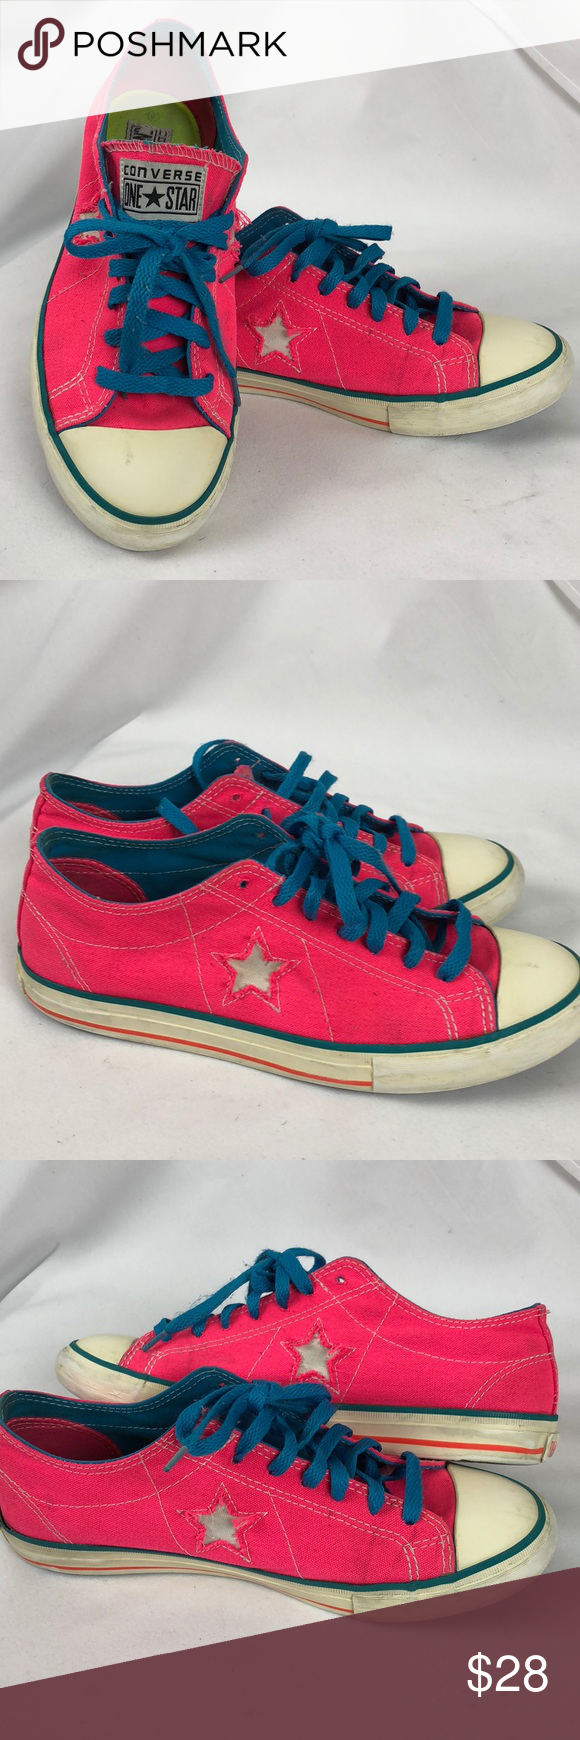 10d25549ca4a Hot Pink one star Converse sneakers Pre loved Size 9 hot pink converse one  star sneakers in hot pink with blue laces this have common signs of wear  Converse ...